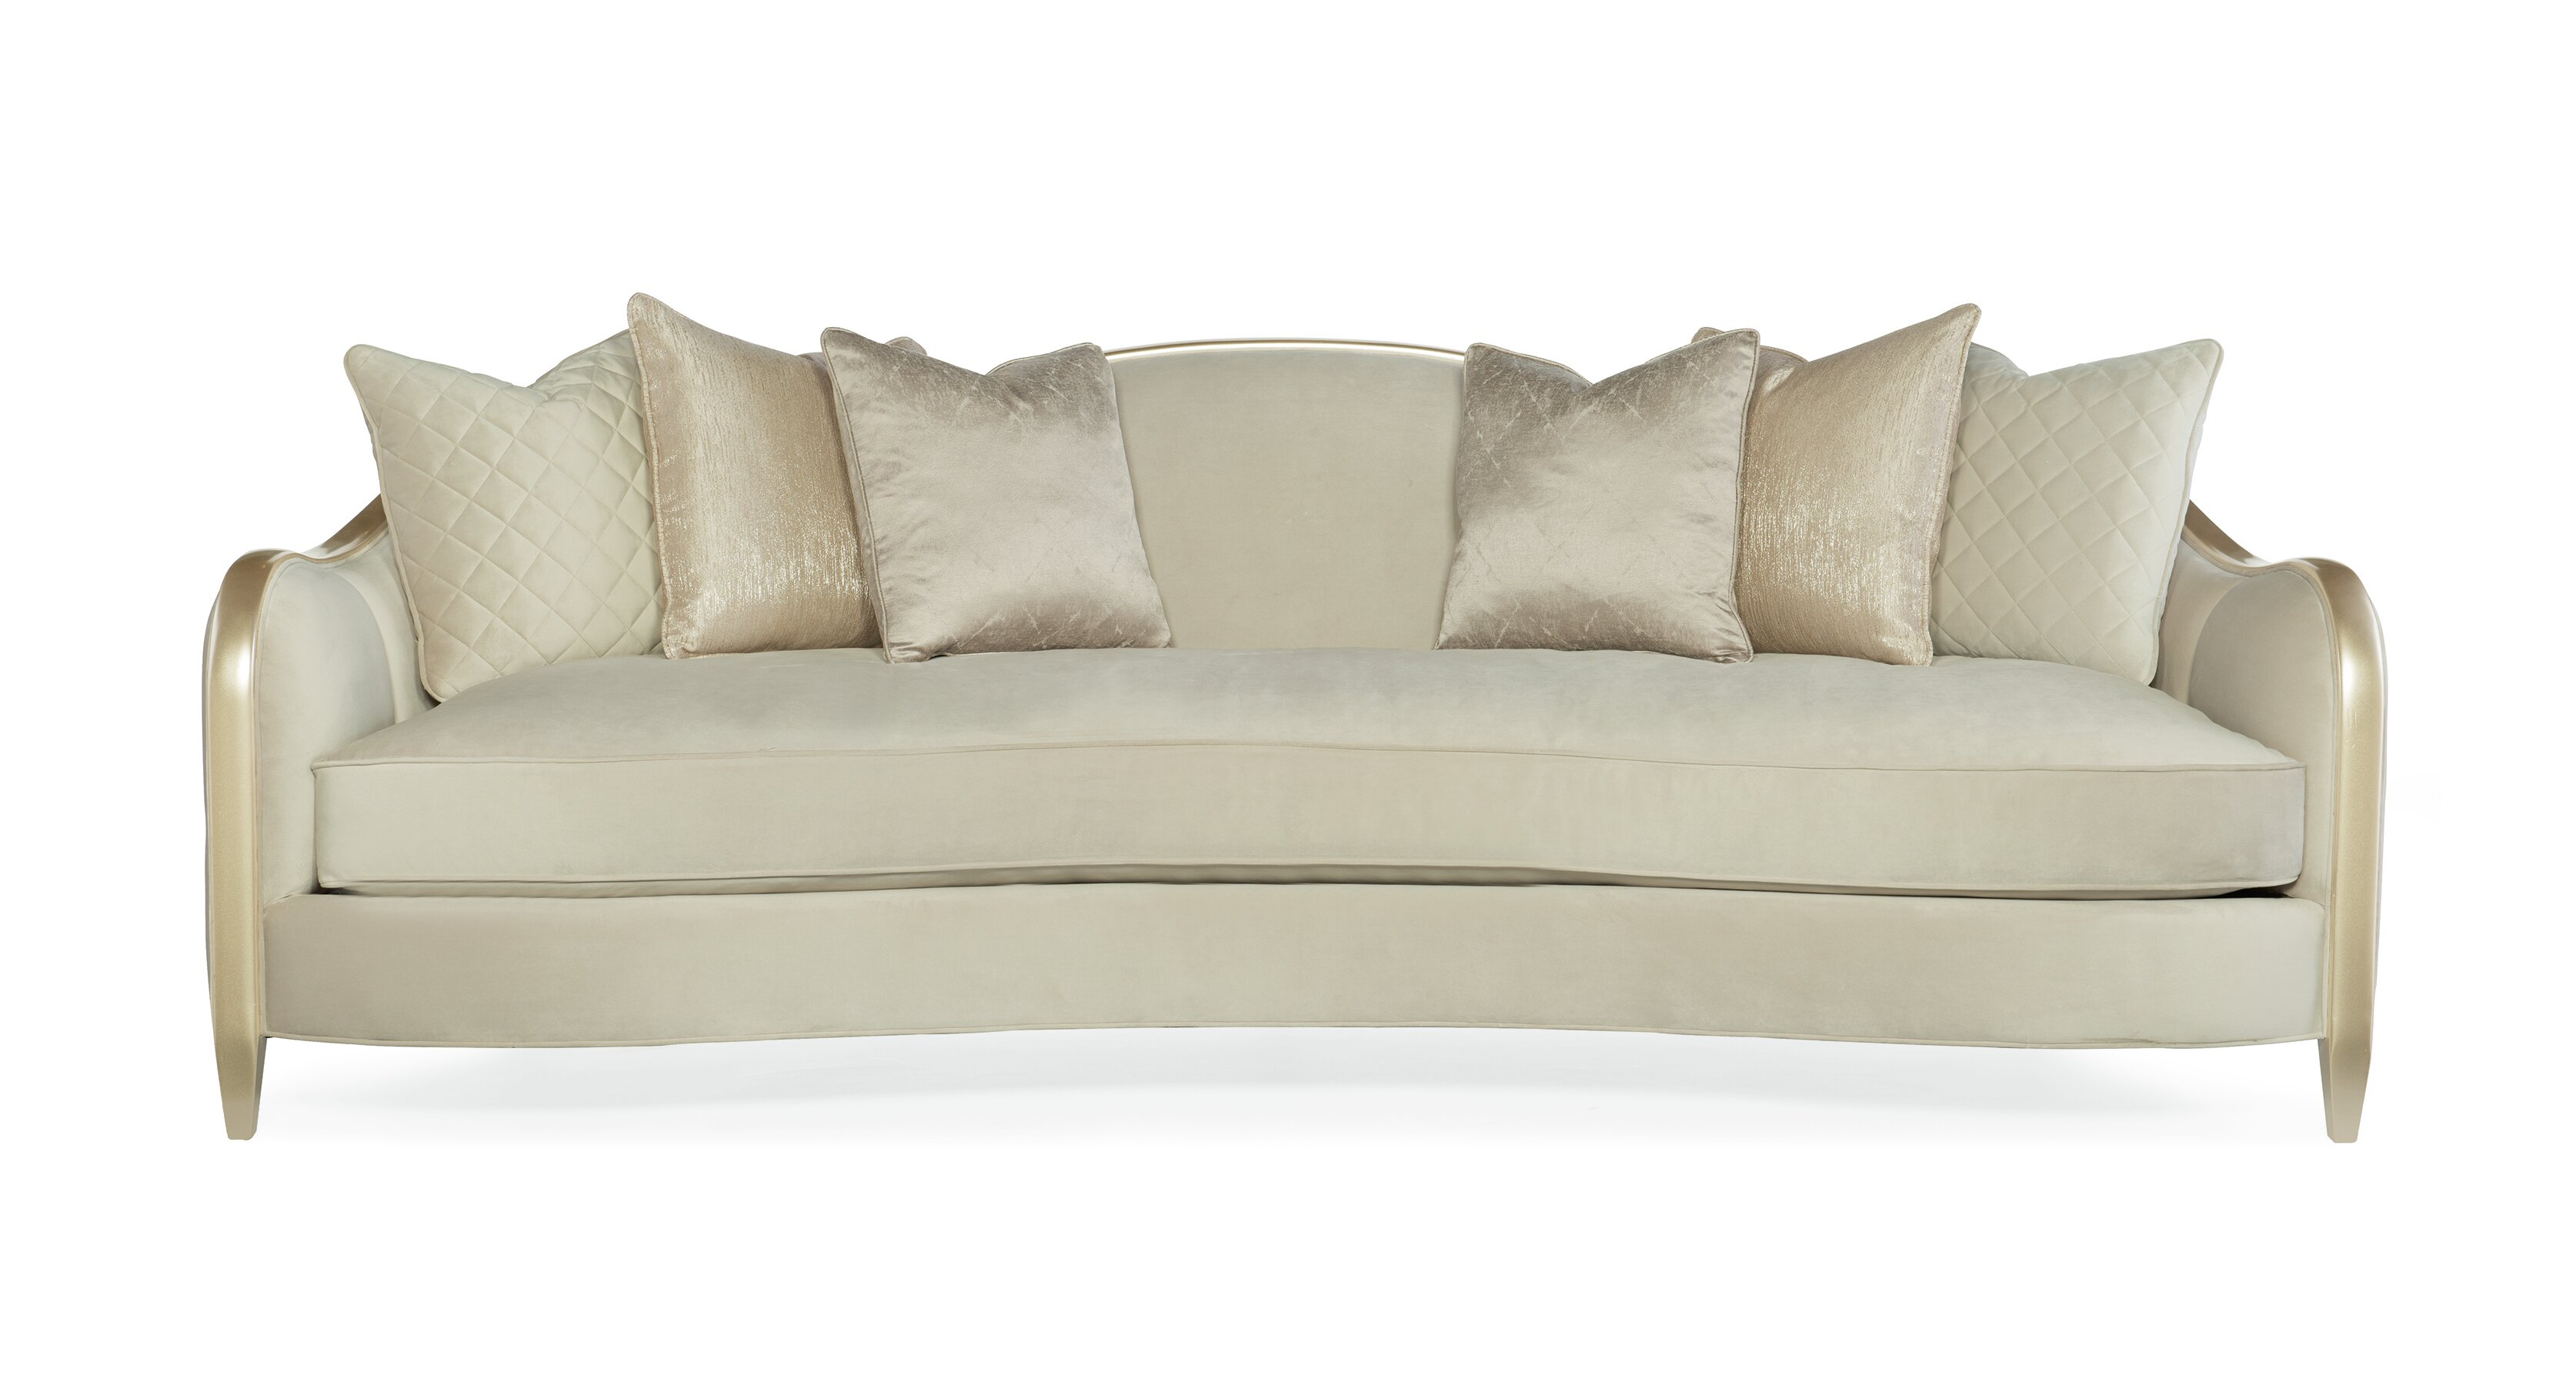 Sensational Adela Cabriole Sofa Ncnpc Chair Design For Home Ncnpcorg